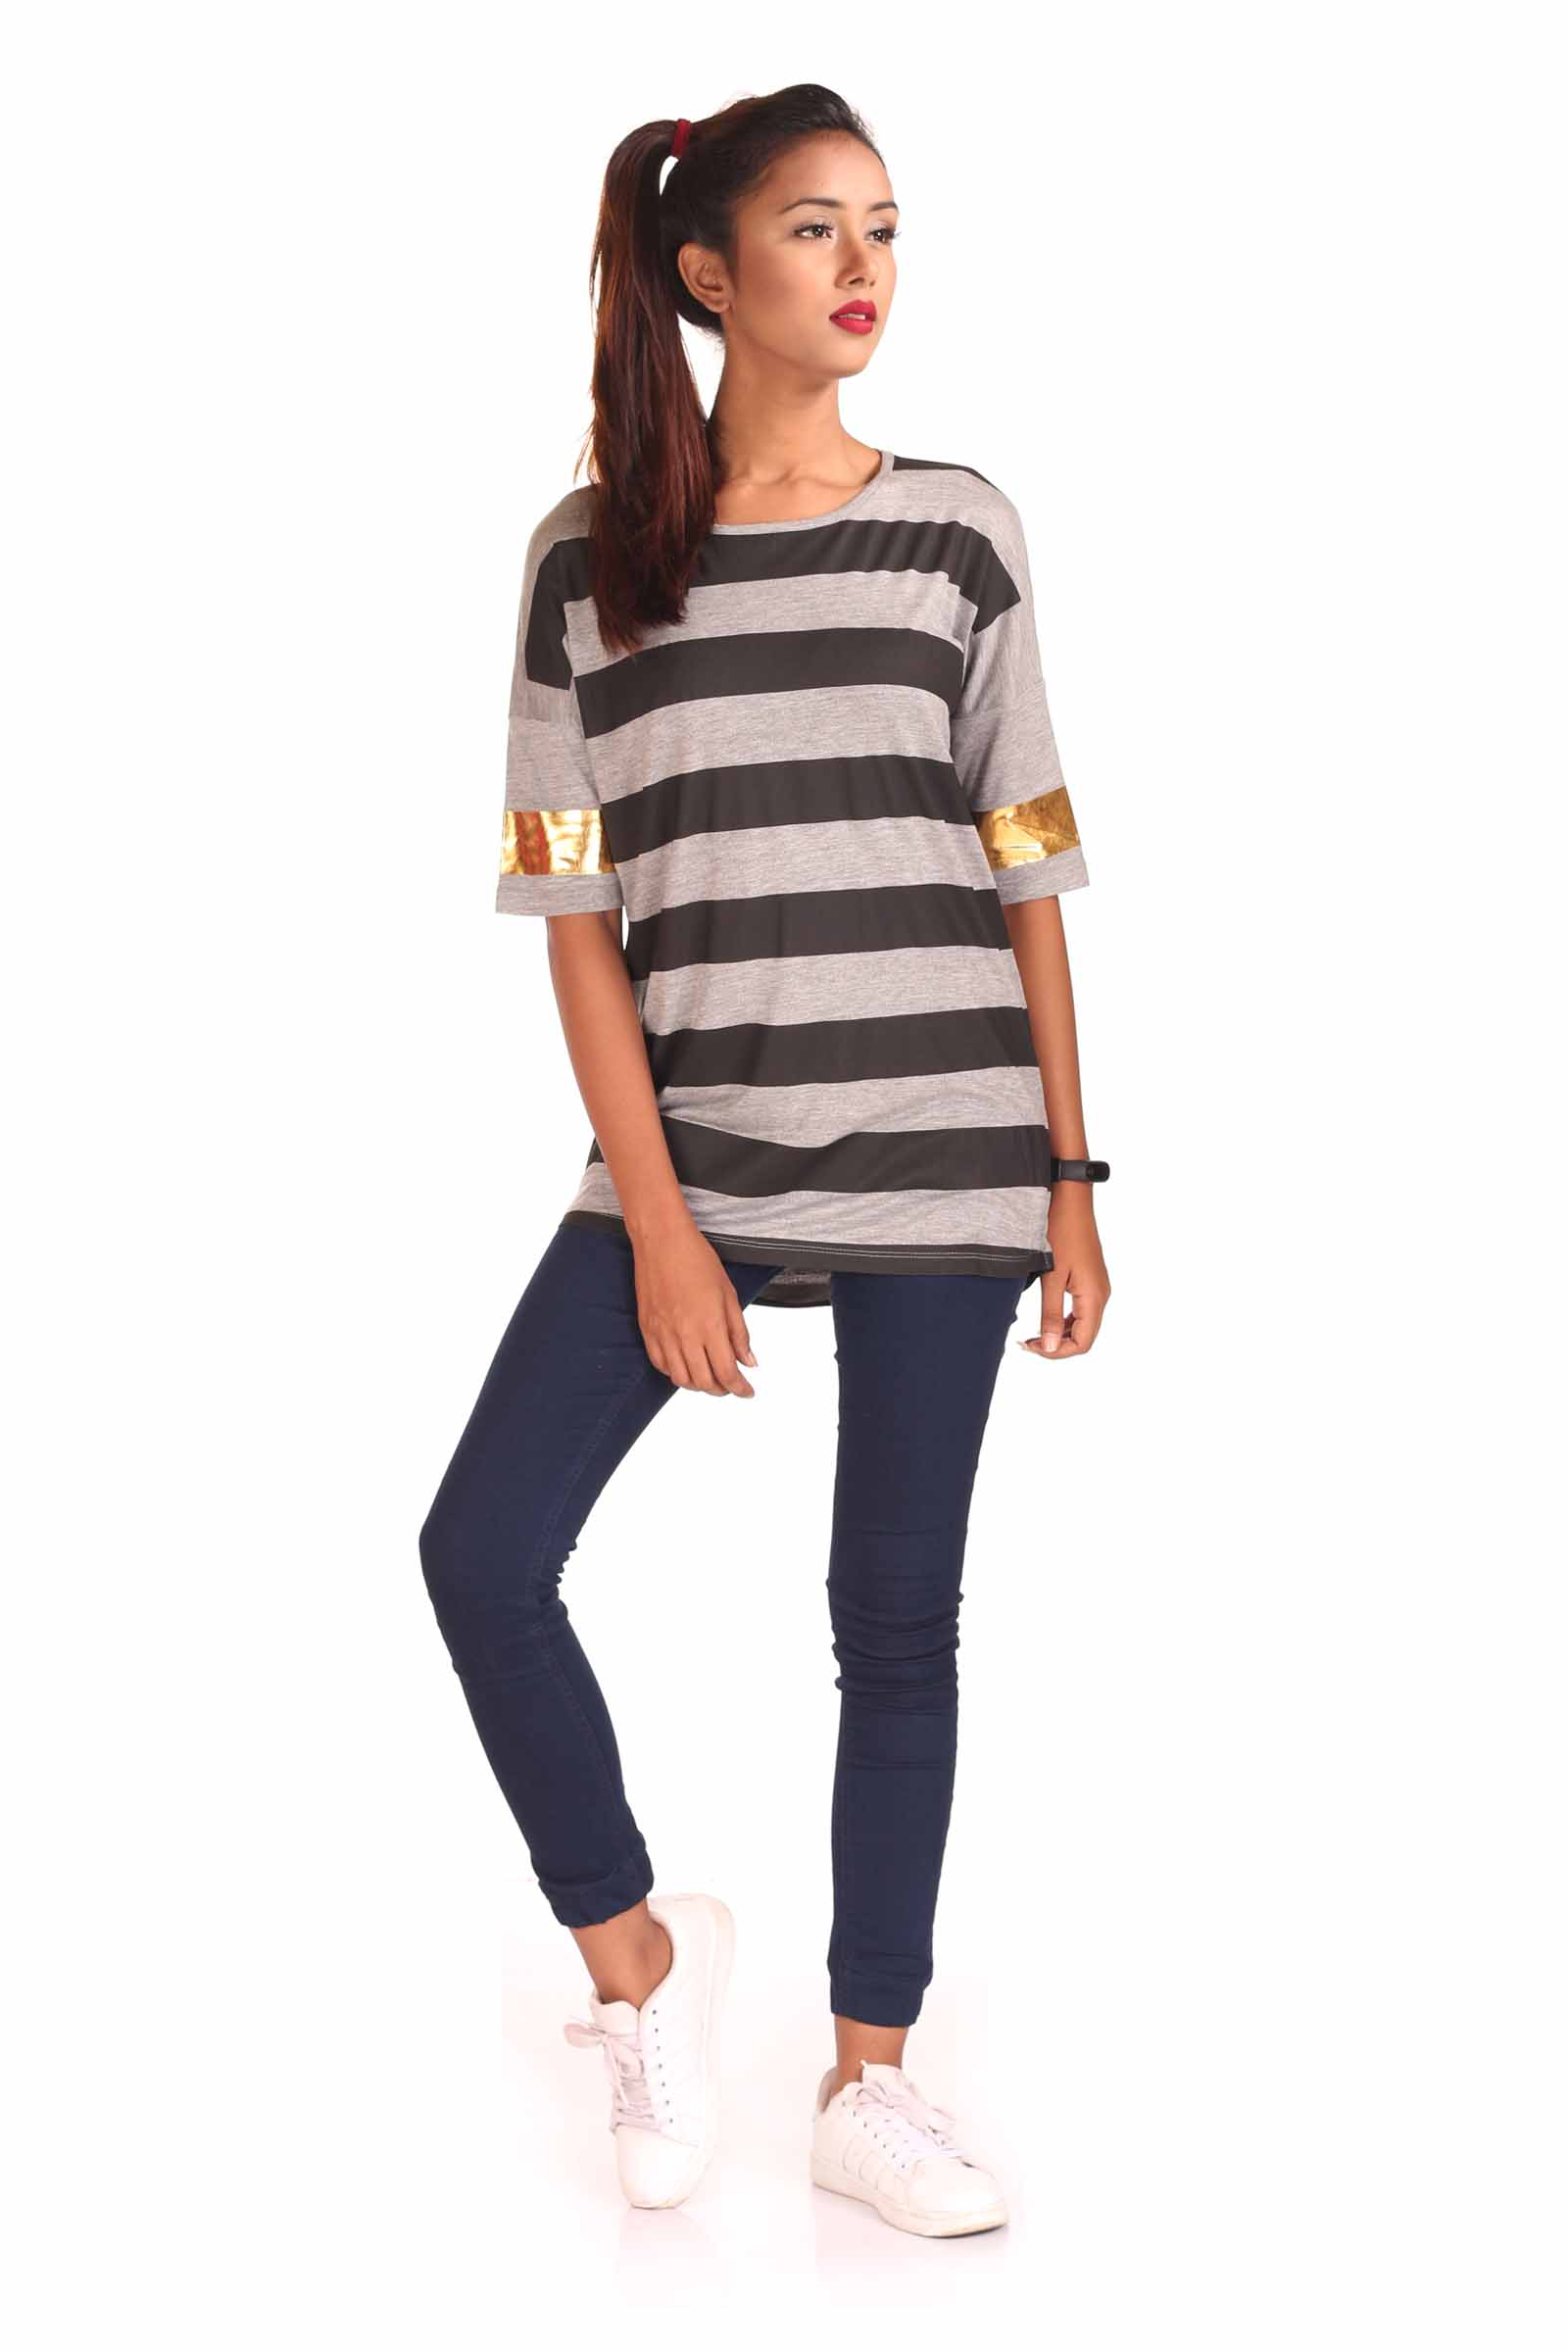 Striped Long Tee with Gold Foil Print